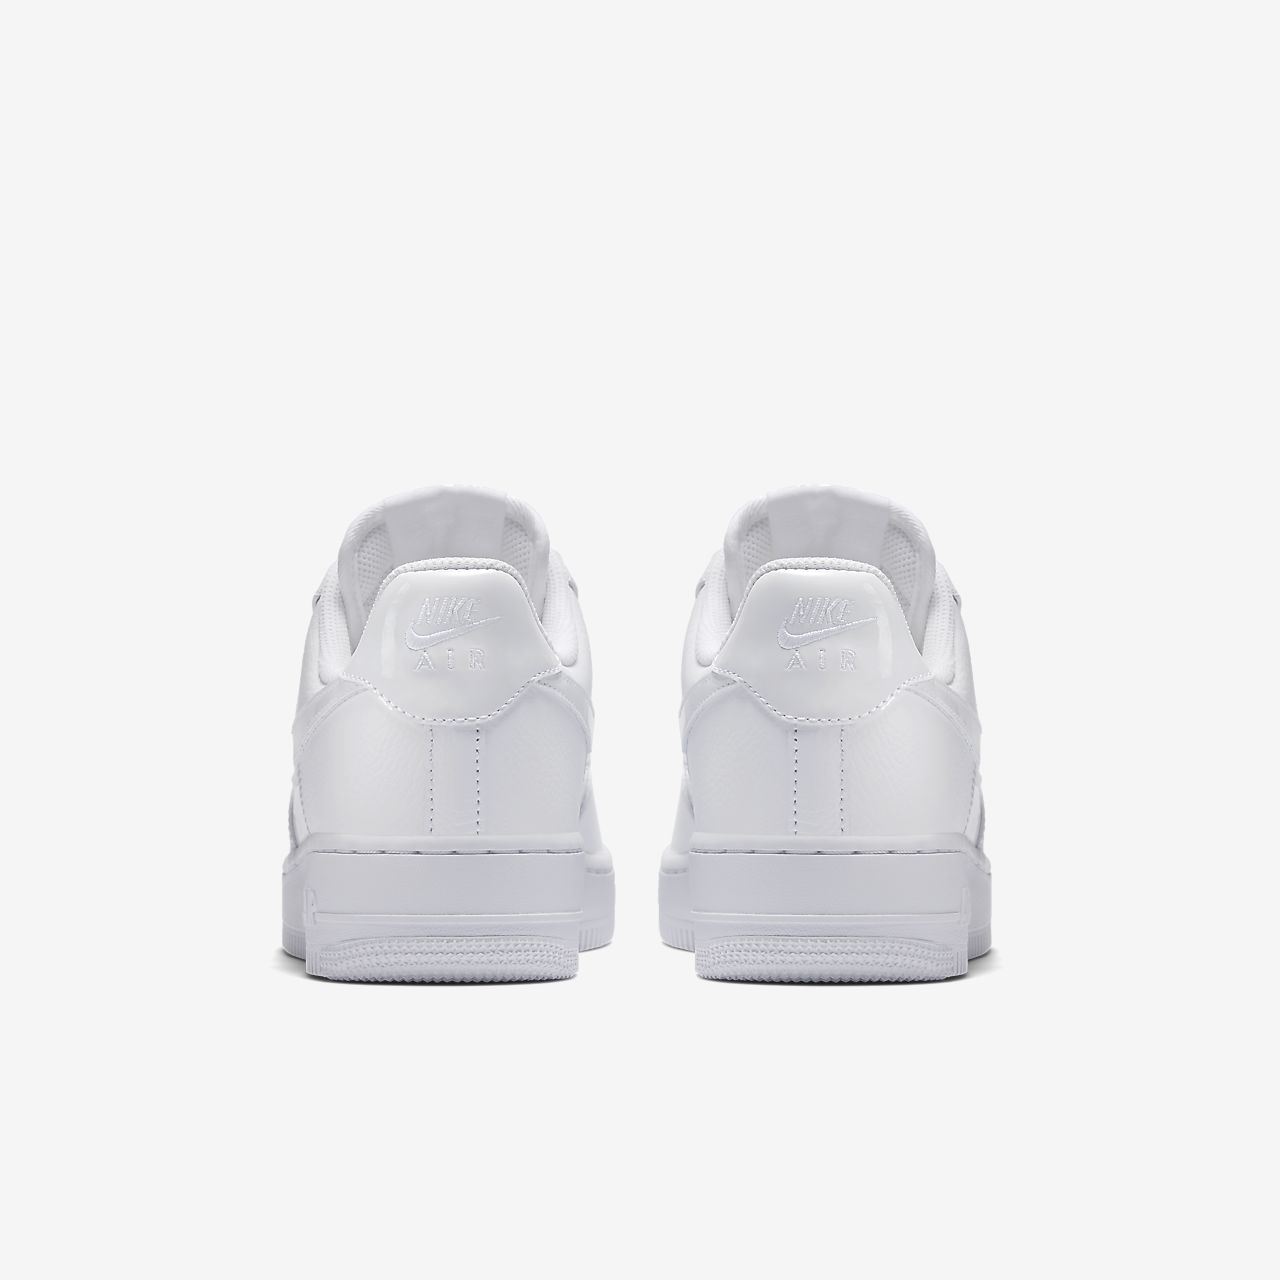 ... Nike Air Force 1 '07 Patent Women's Shoe